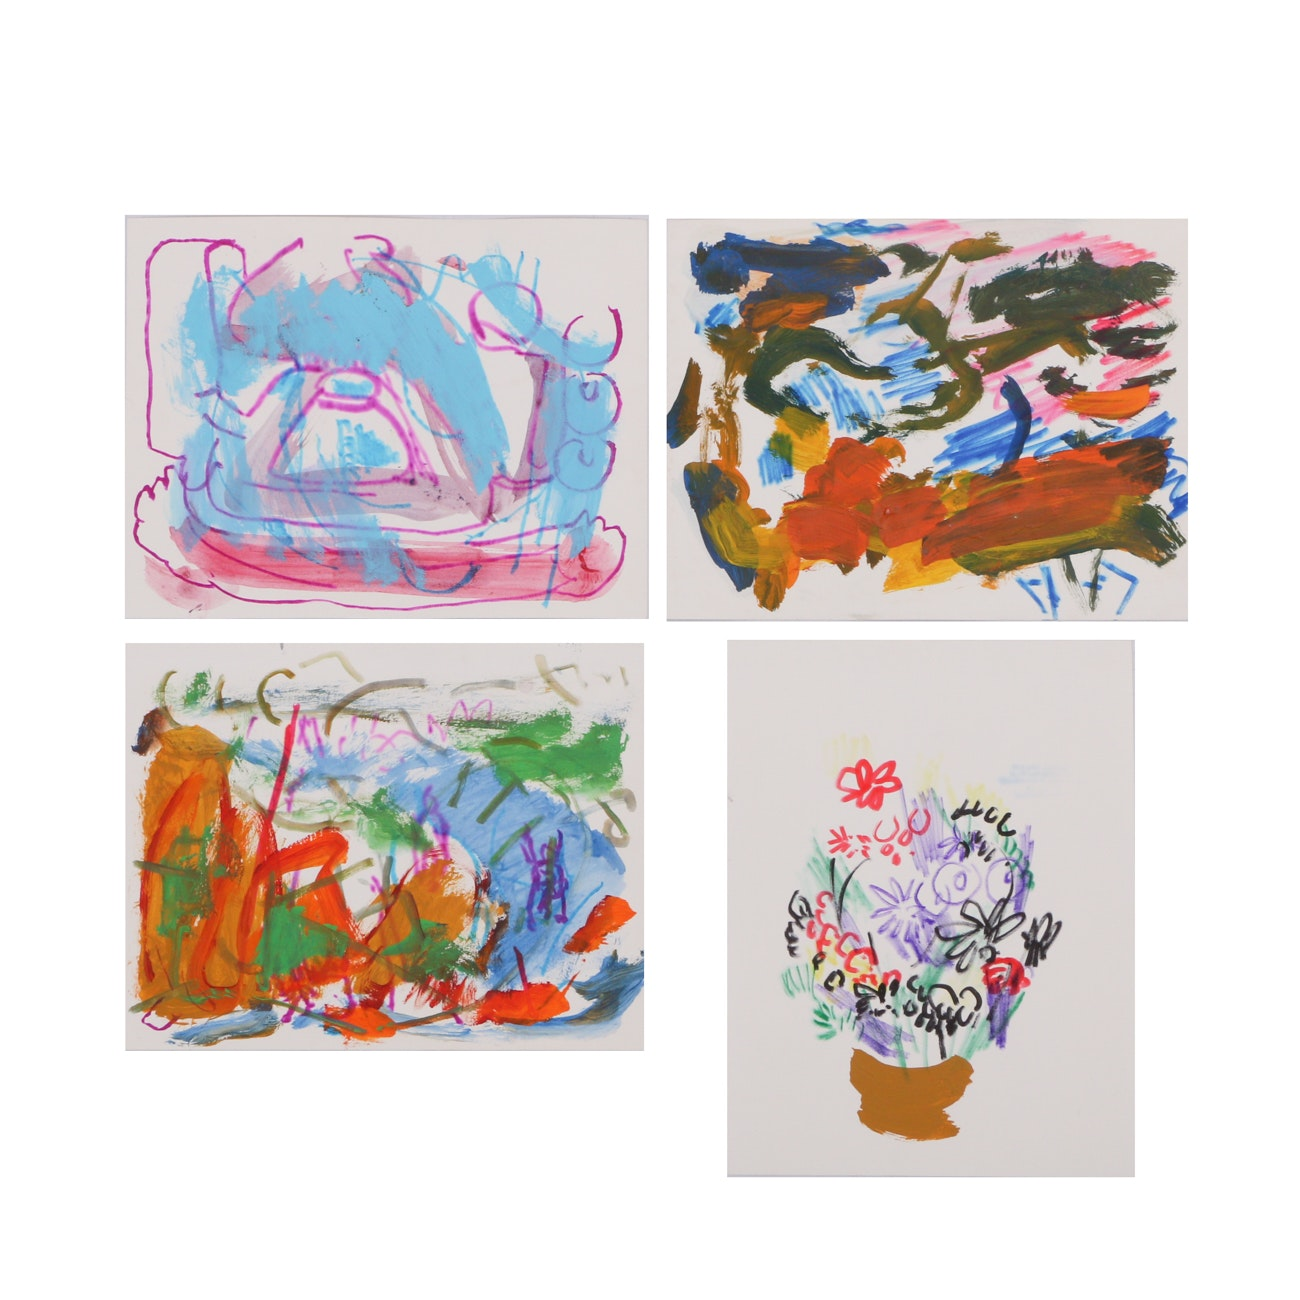 Four Paul Chidlaw Original Mixed Media Paintings on Paper